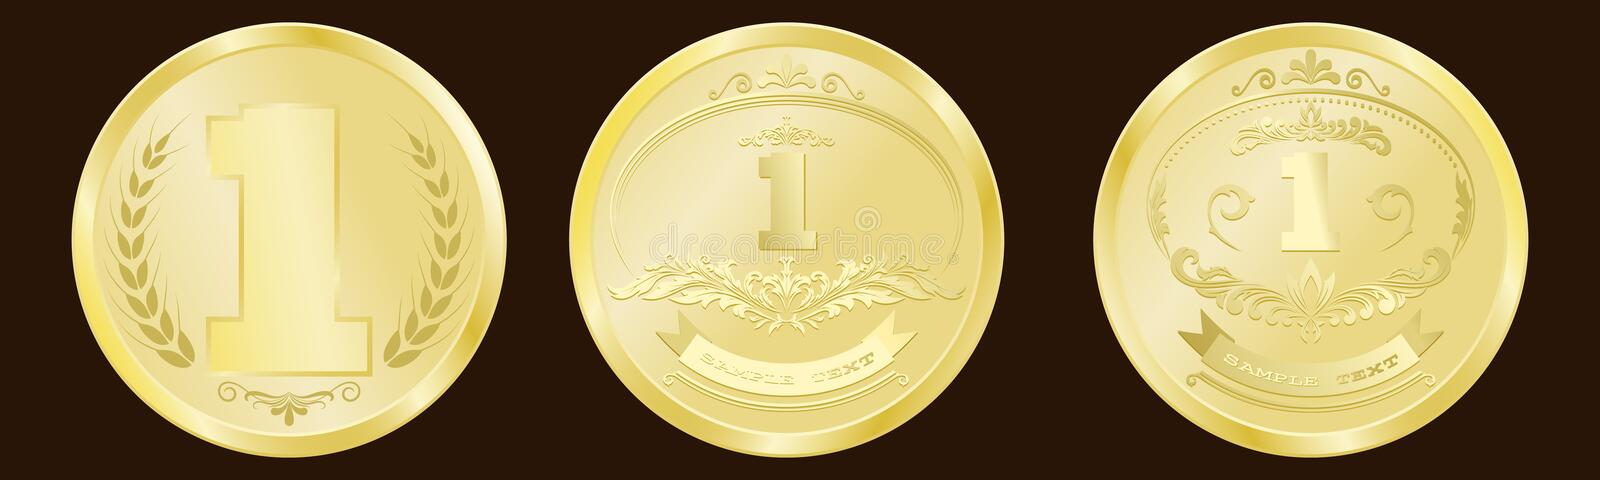 Luxury gold badges. And sports medals or premium quality product in vintage style, vector illustration stock illustration